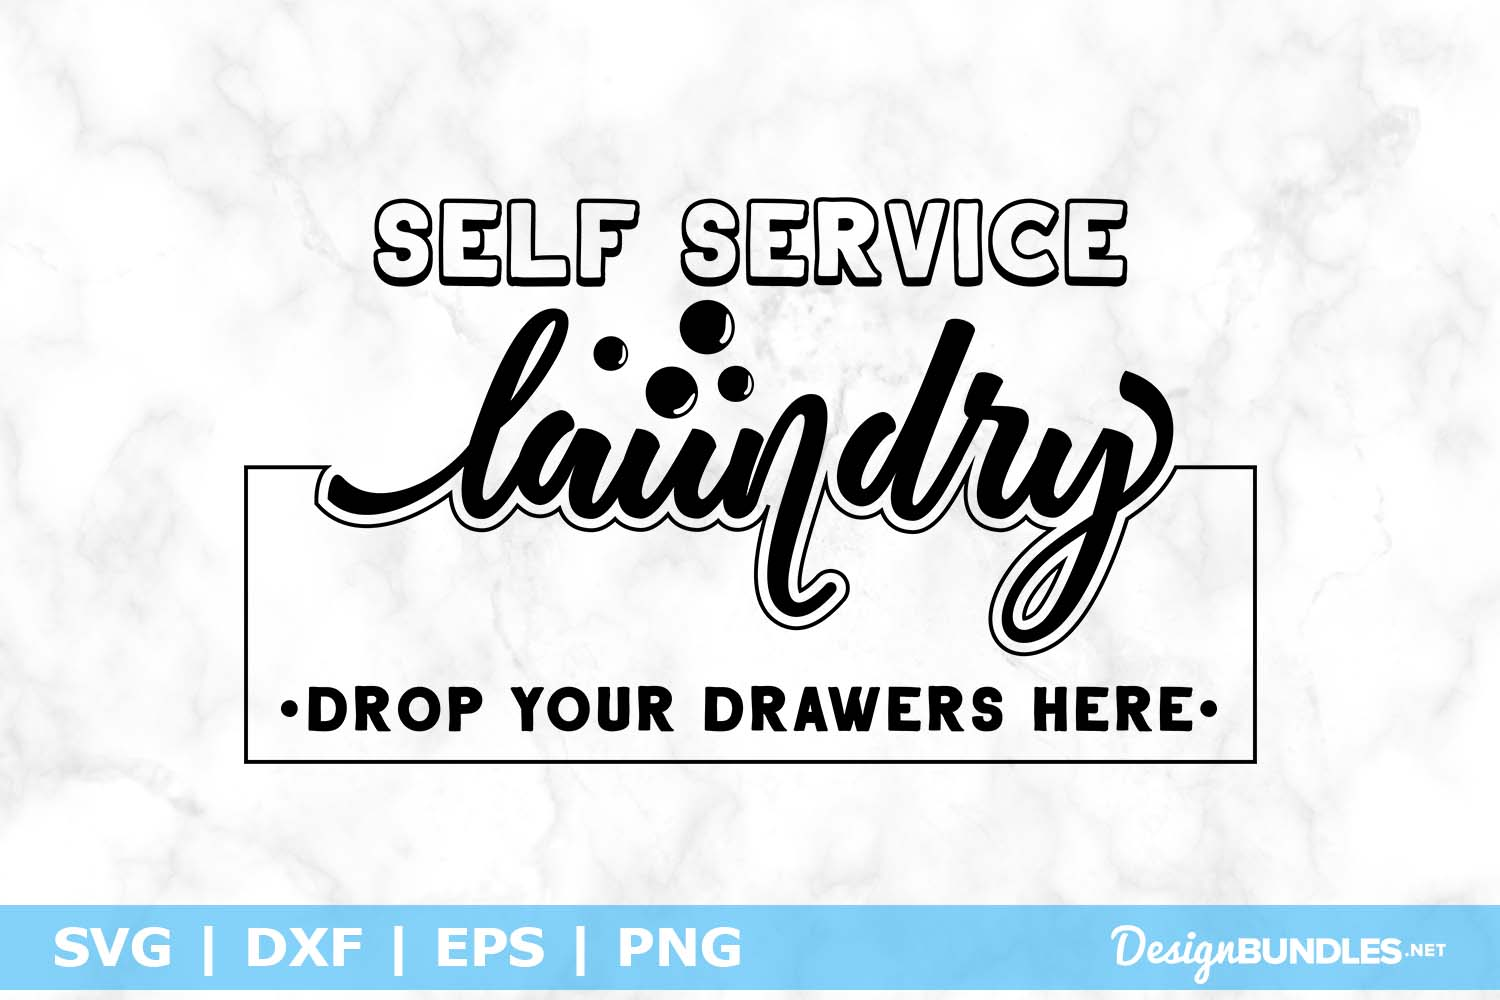 Laundry Self Service - Drop Your Drawers Here SVG File example image 1